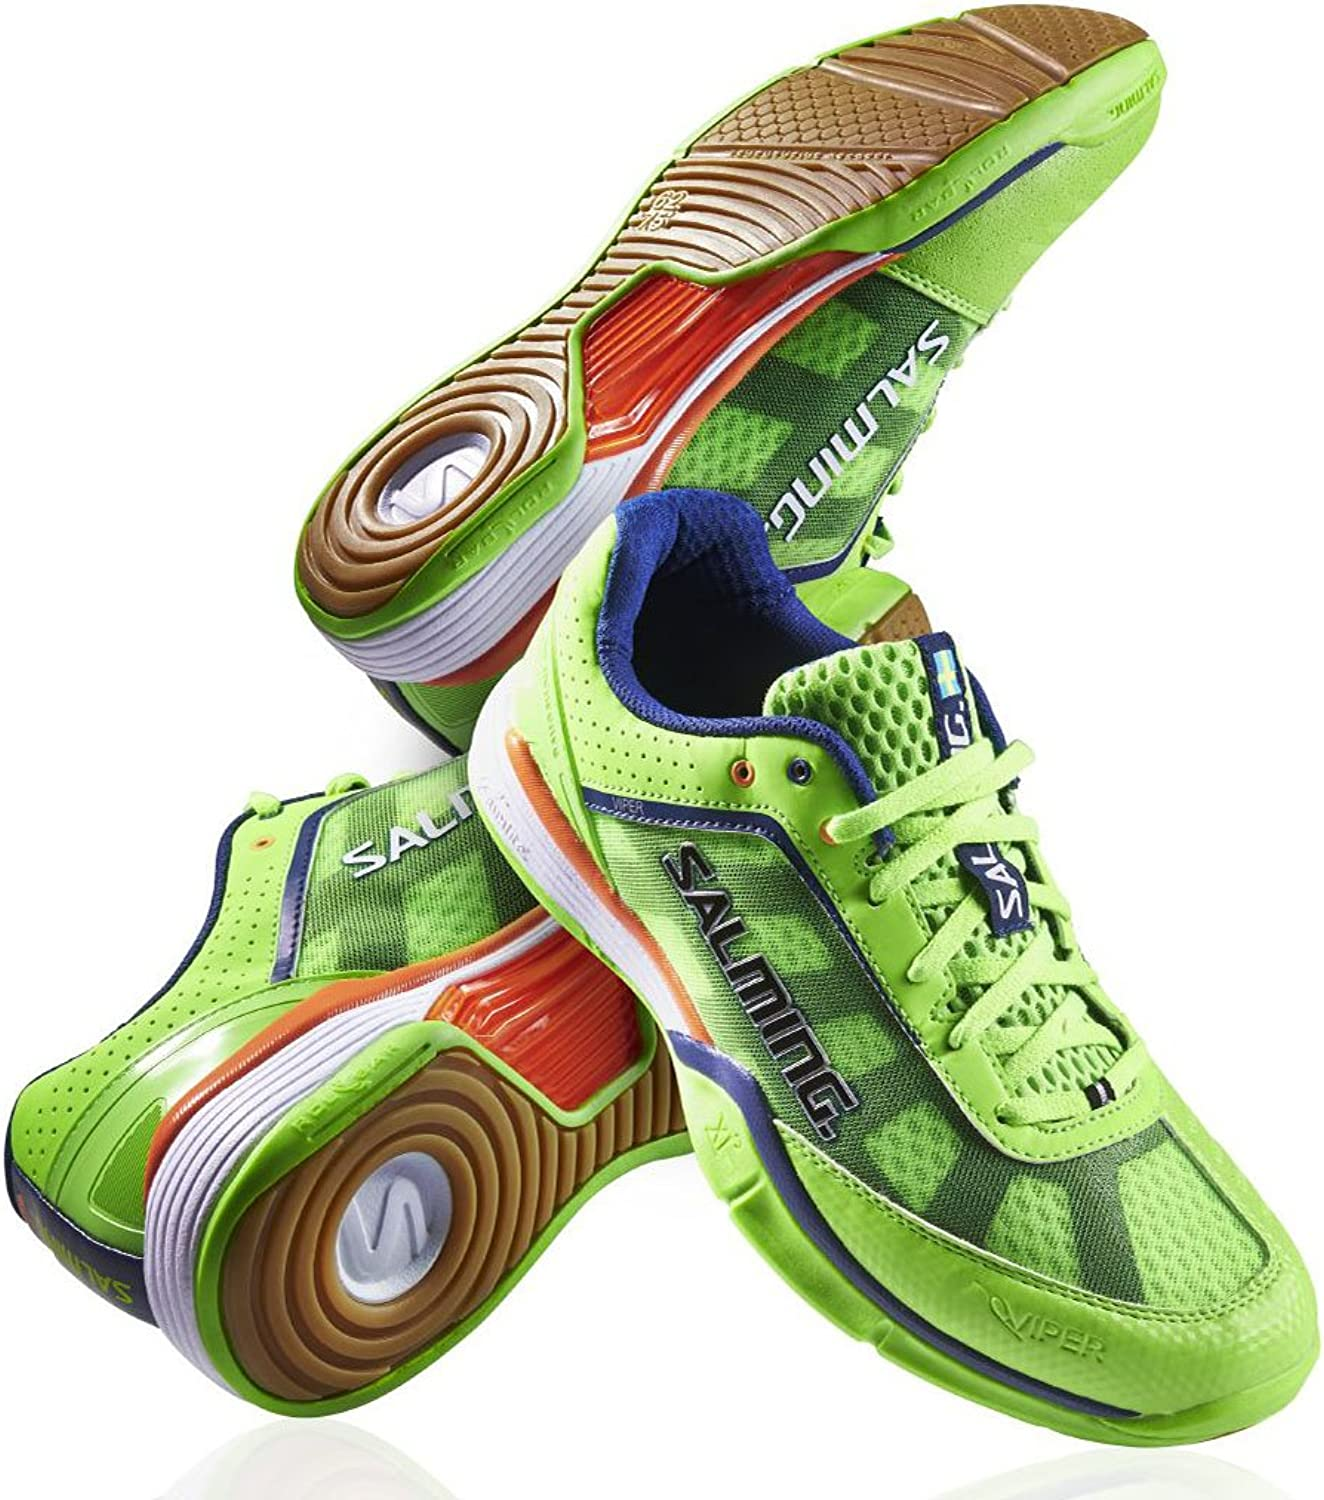 Salming Viper 2.0 Gecko Green Men's Squash shoes